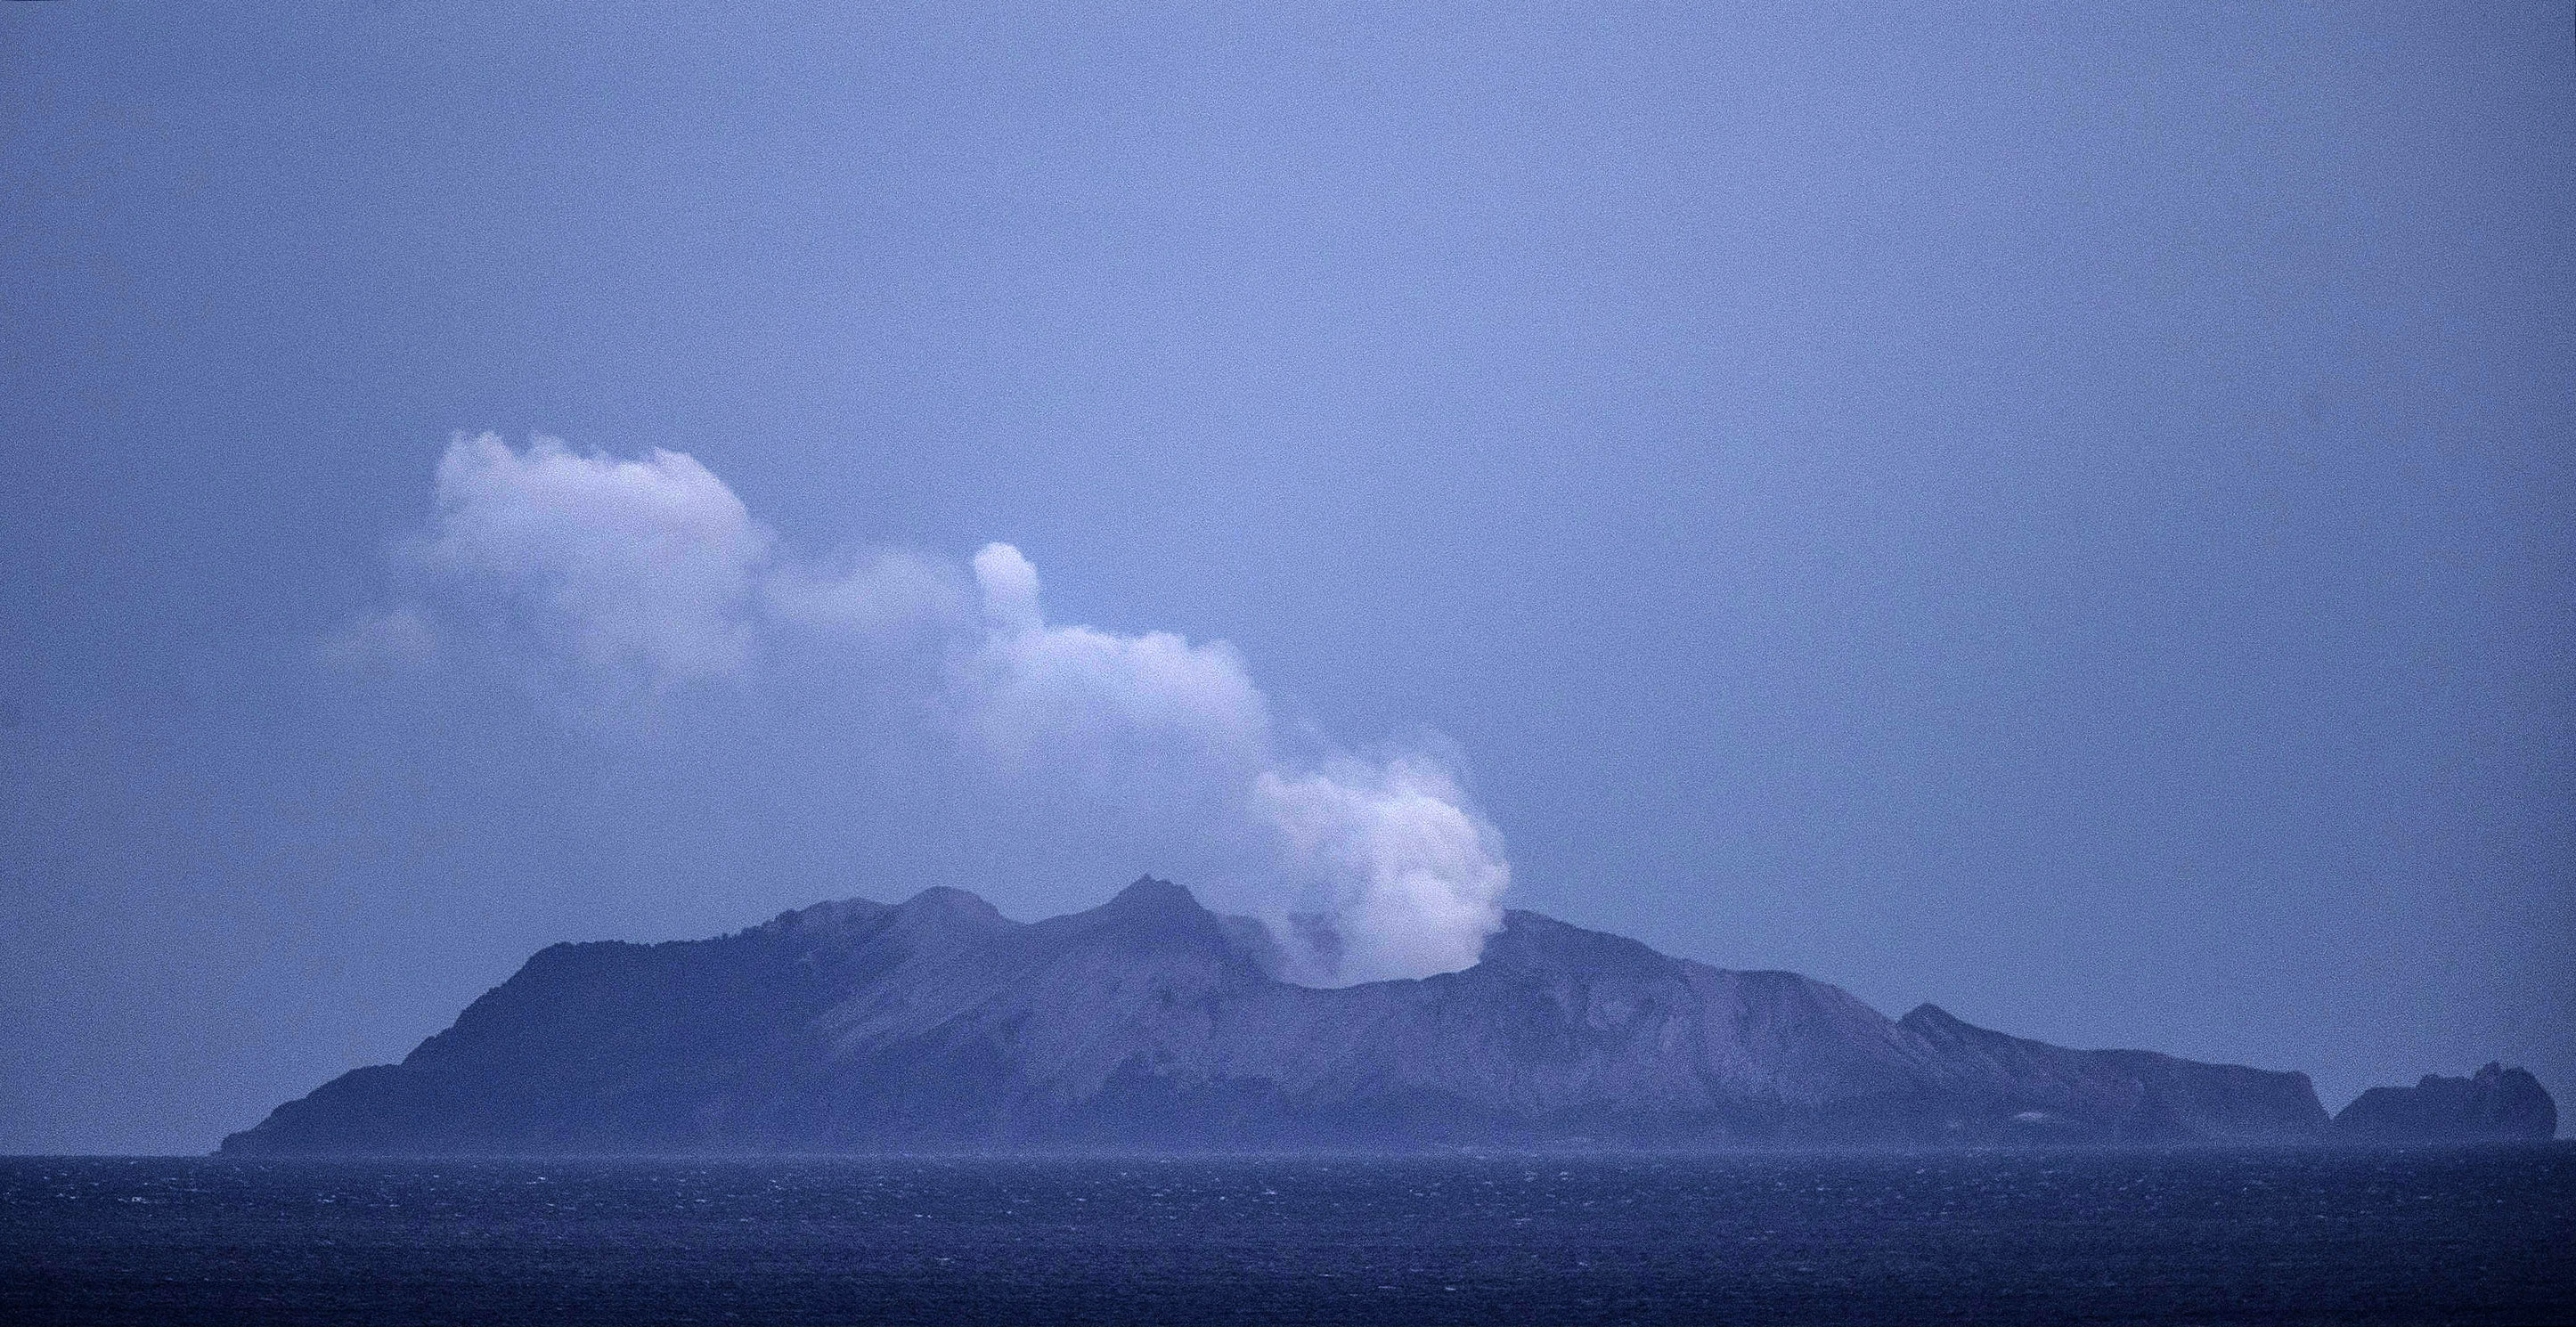 Smoke can be seen rising from the volcano.